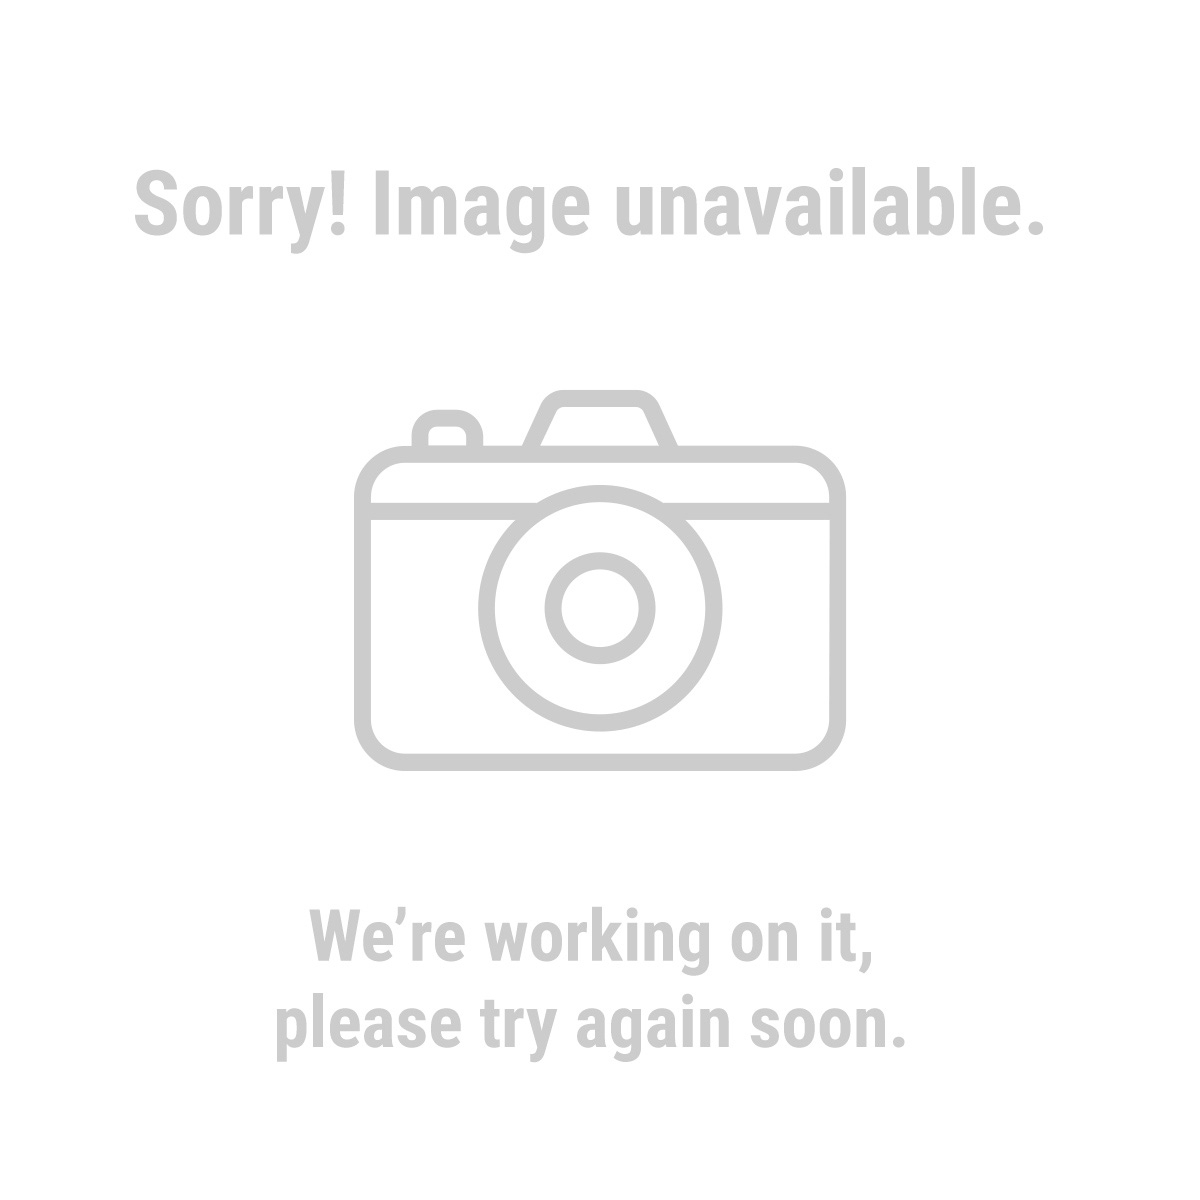 WD-40® 61495 3-In-One Oil, 4 Oz.